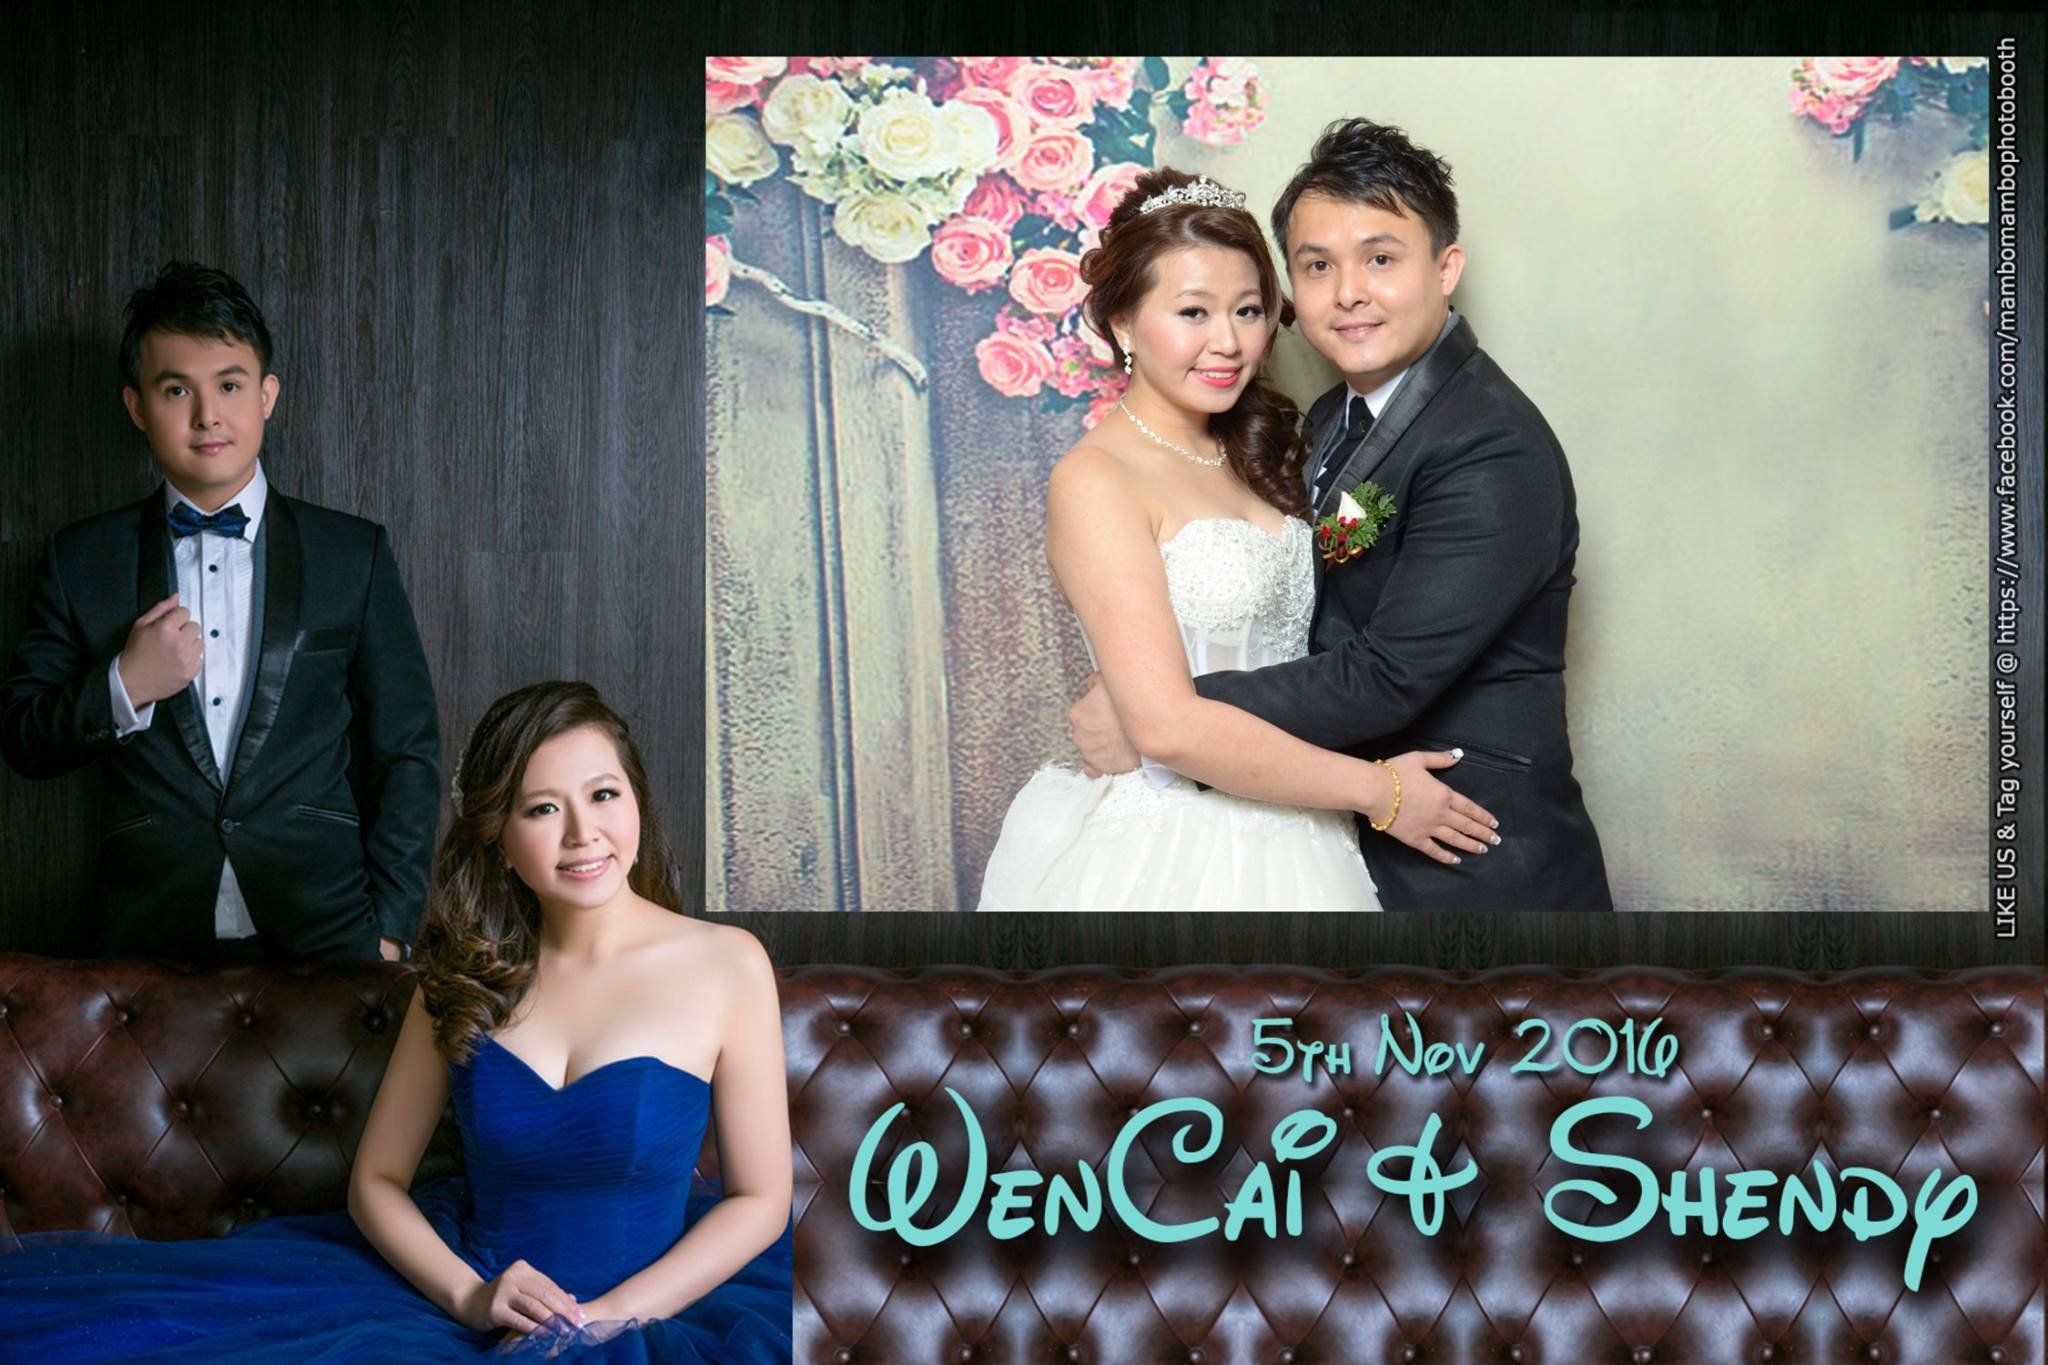 Wencai & Shendy